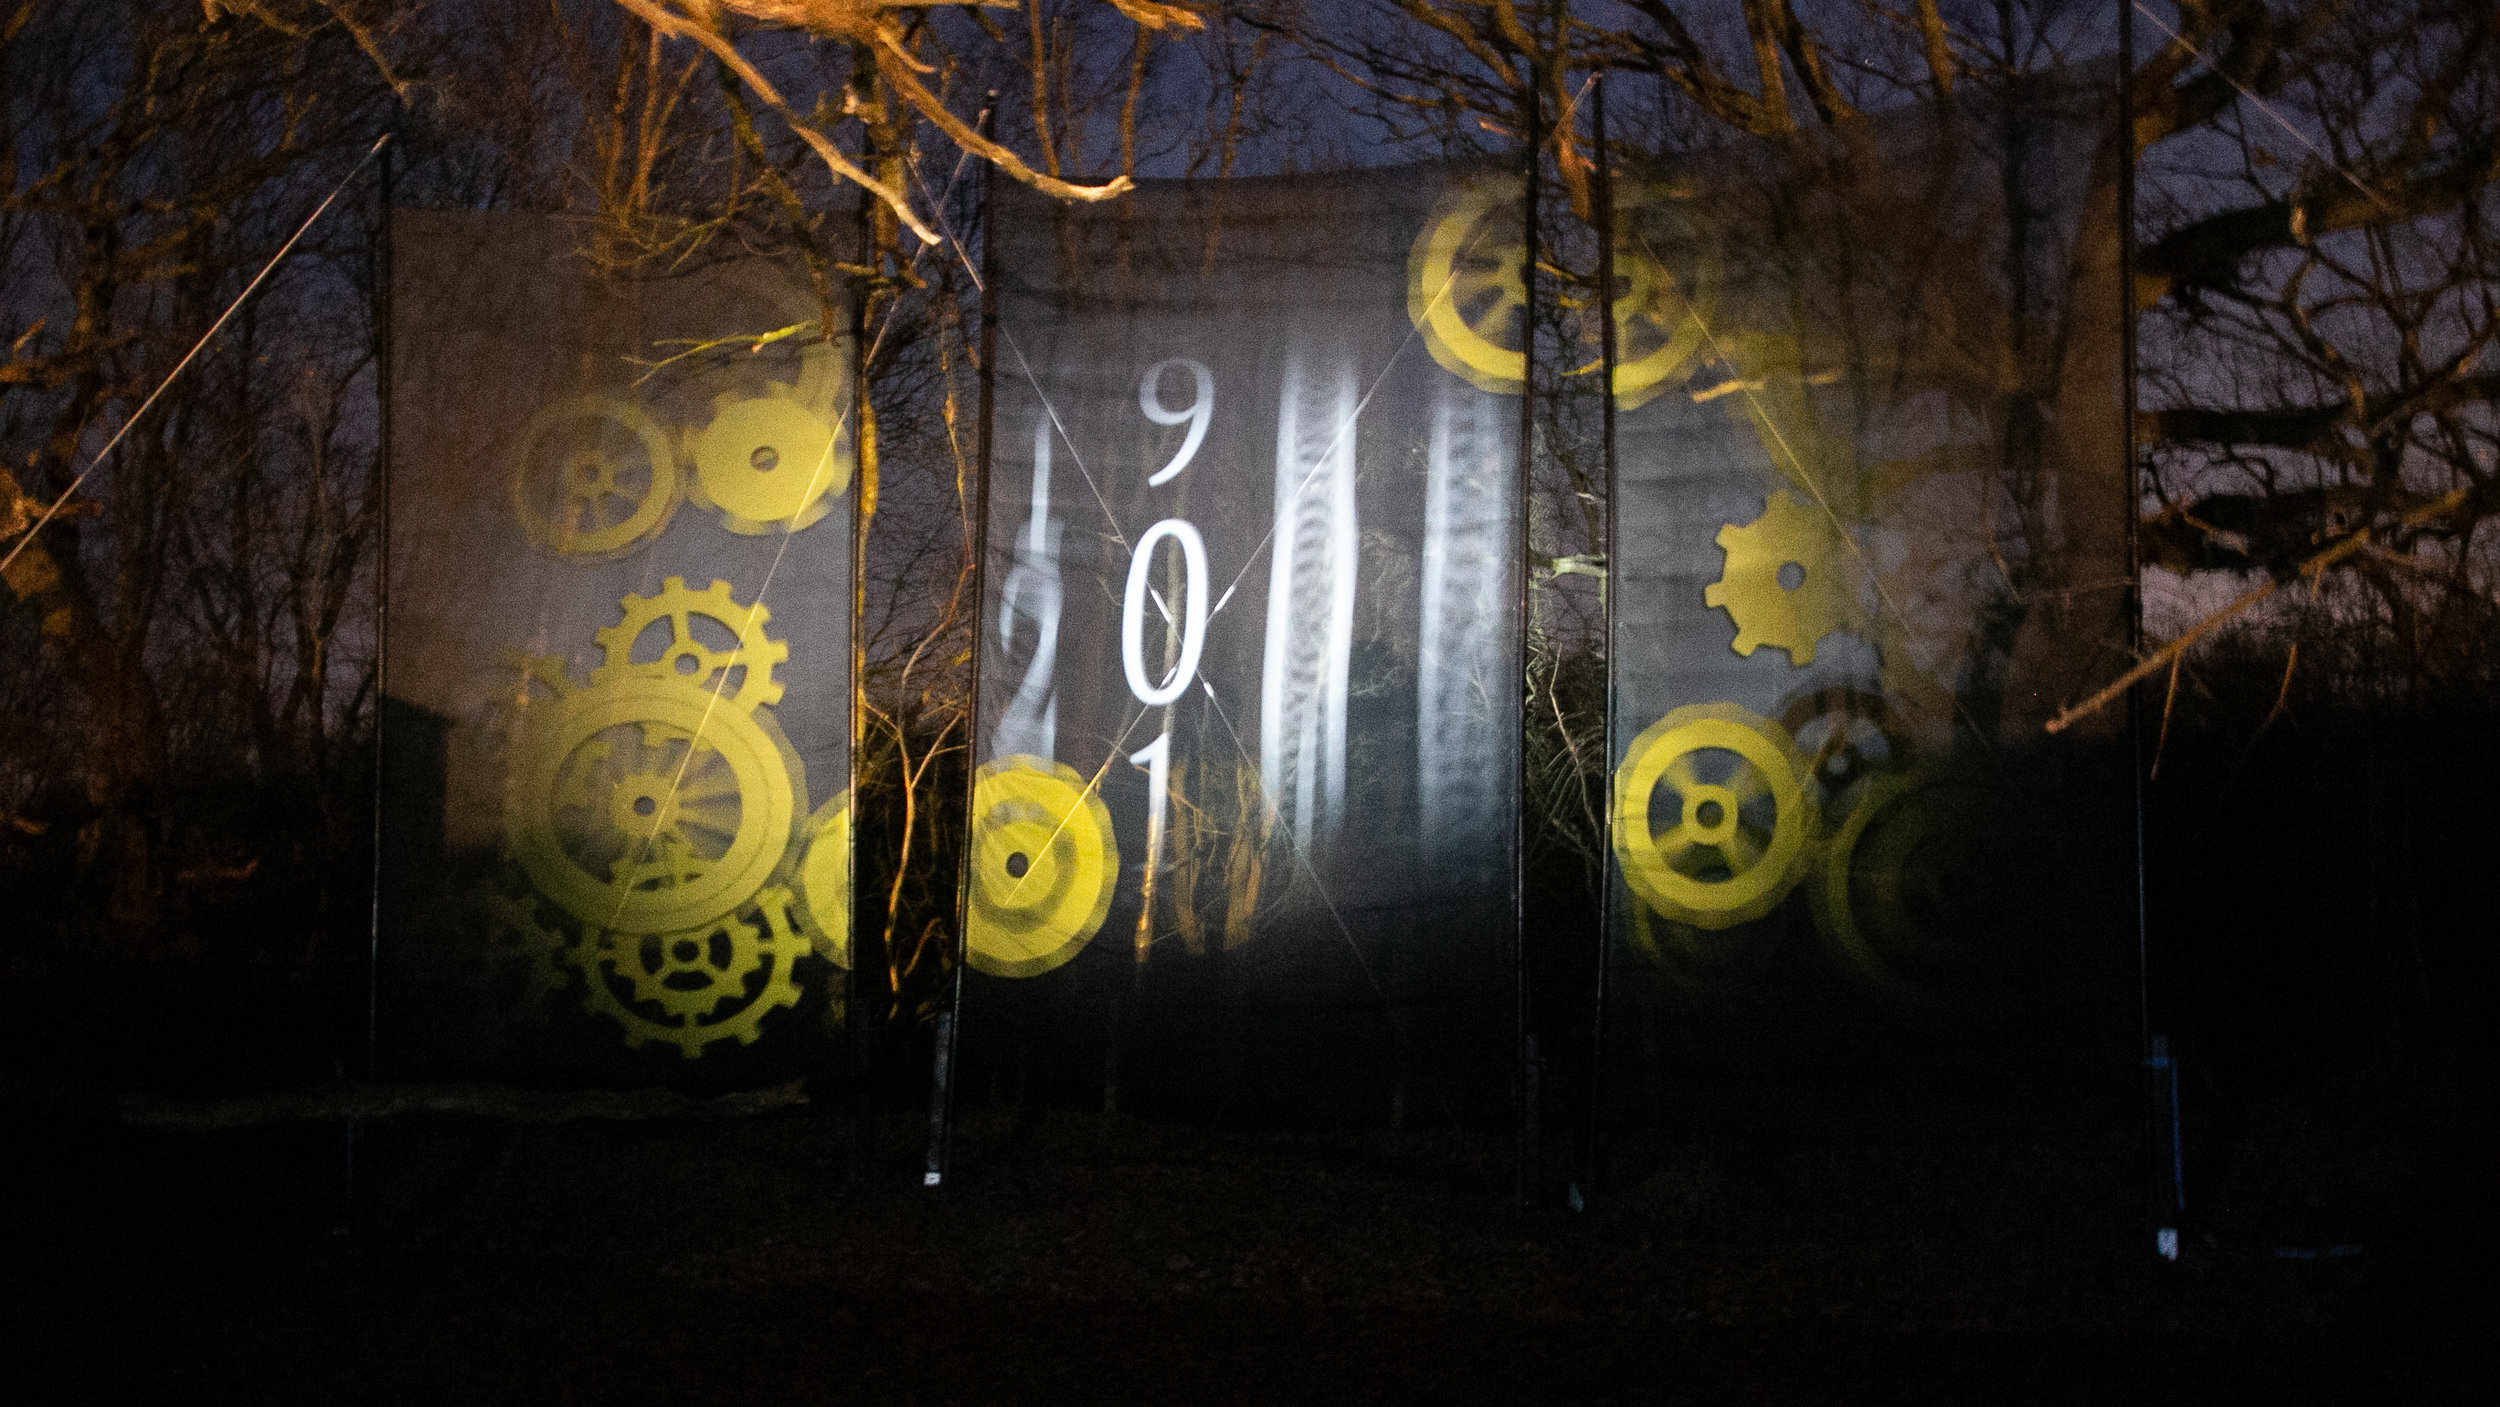 PROJECTION MAPPING - Custom-designed Projection Mapping also known as Video Mapping can bring your event to life!